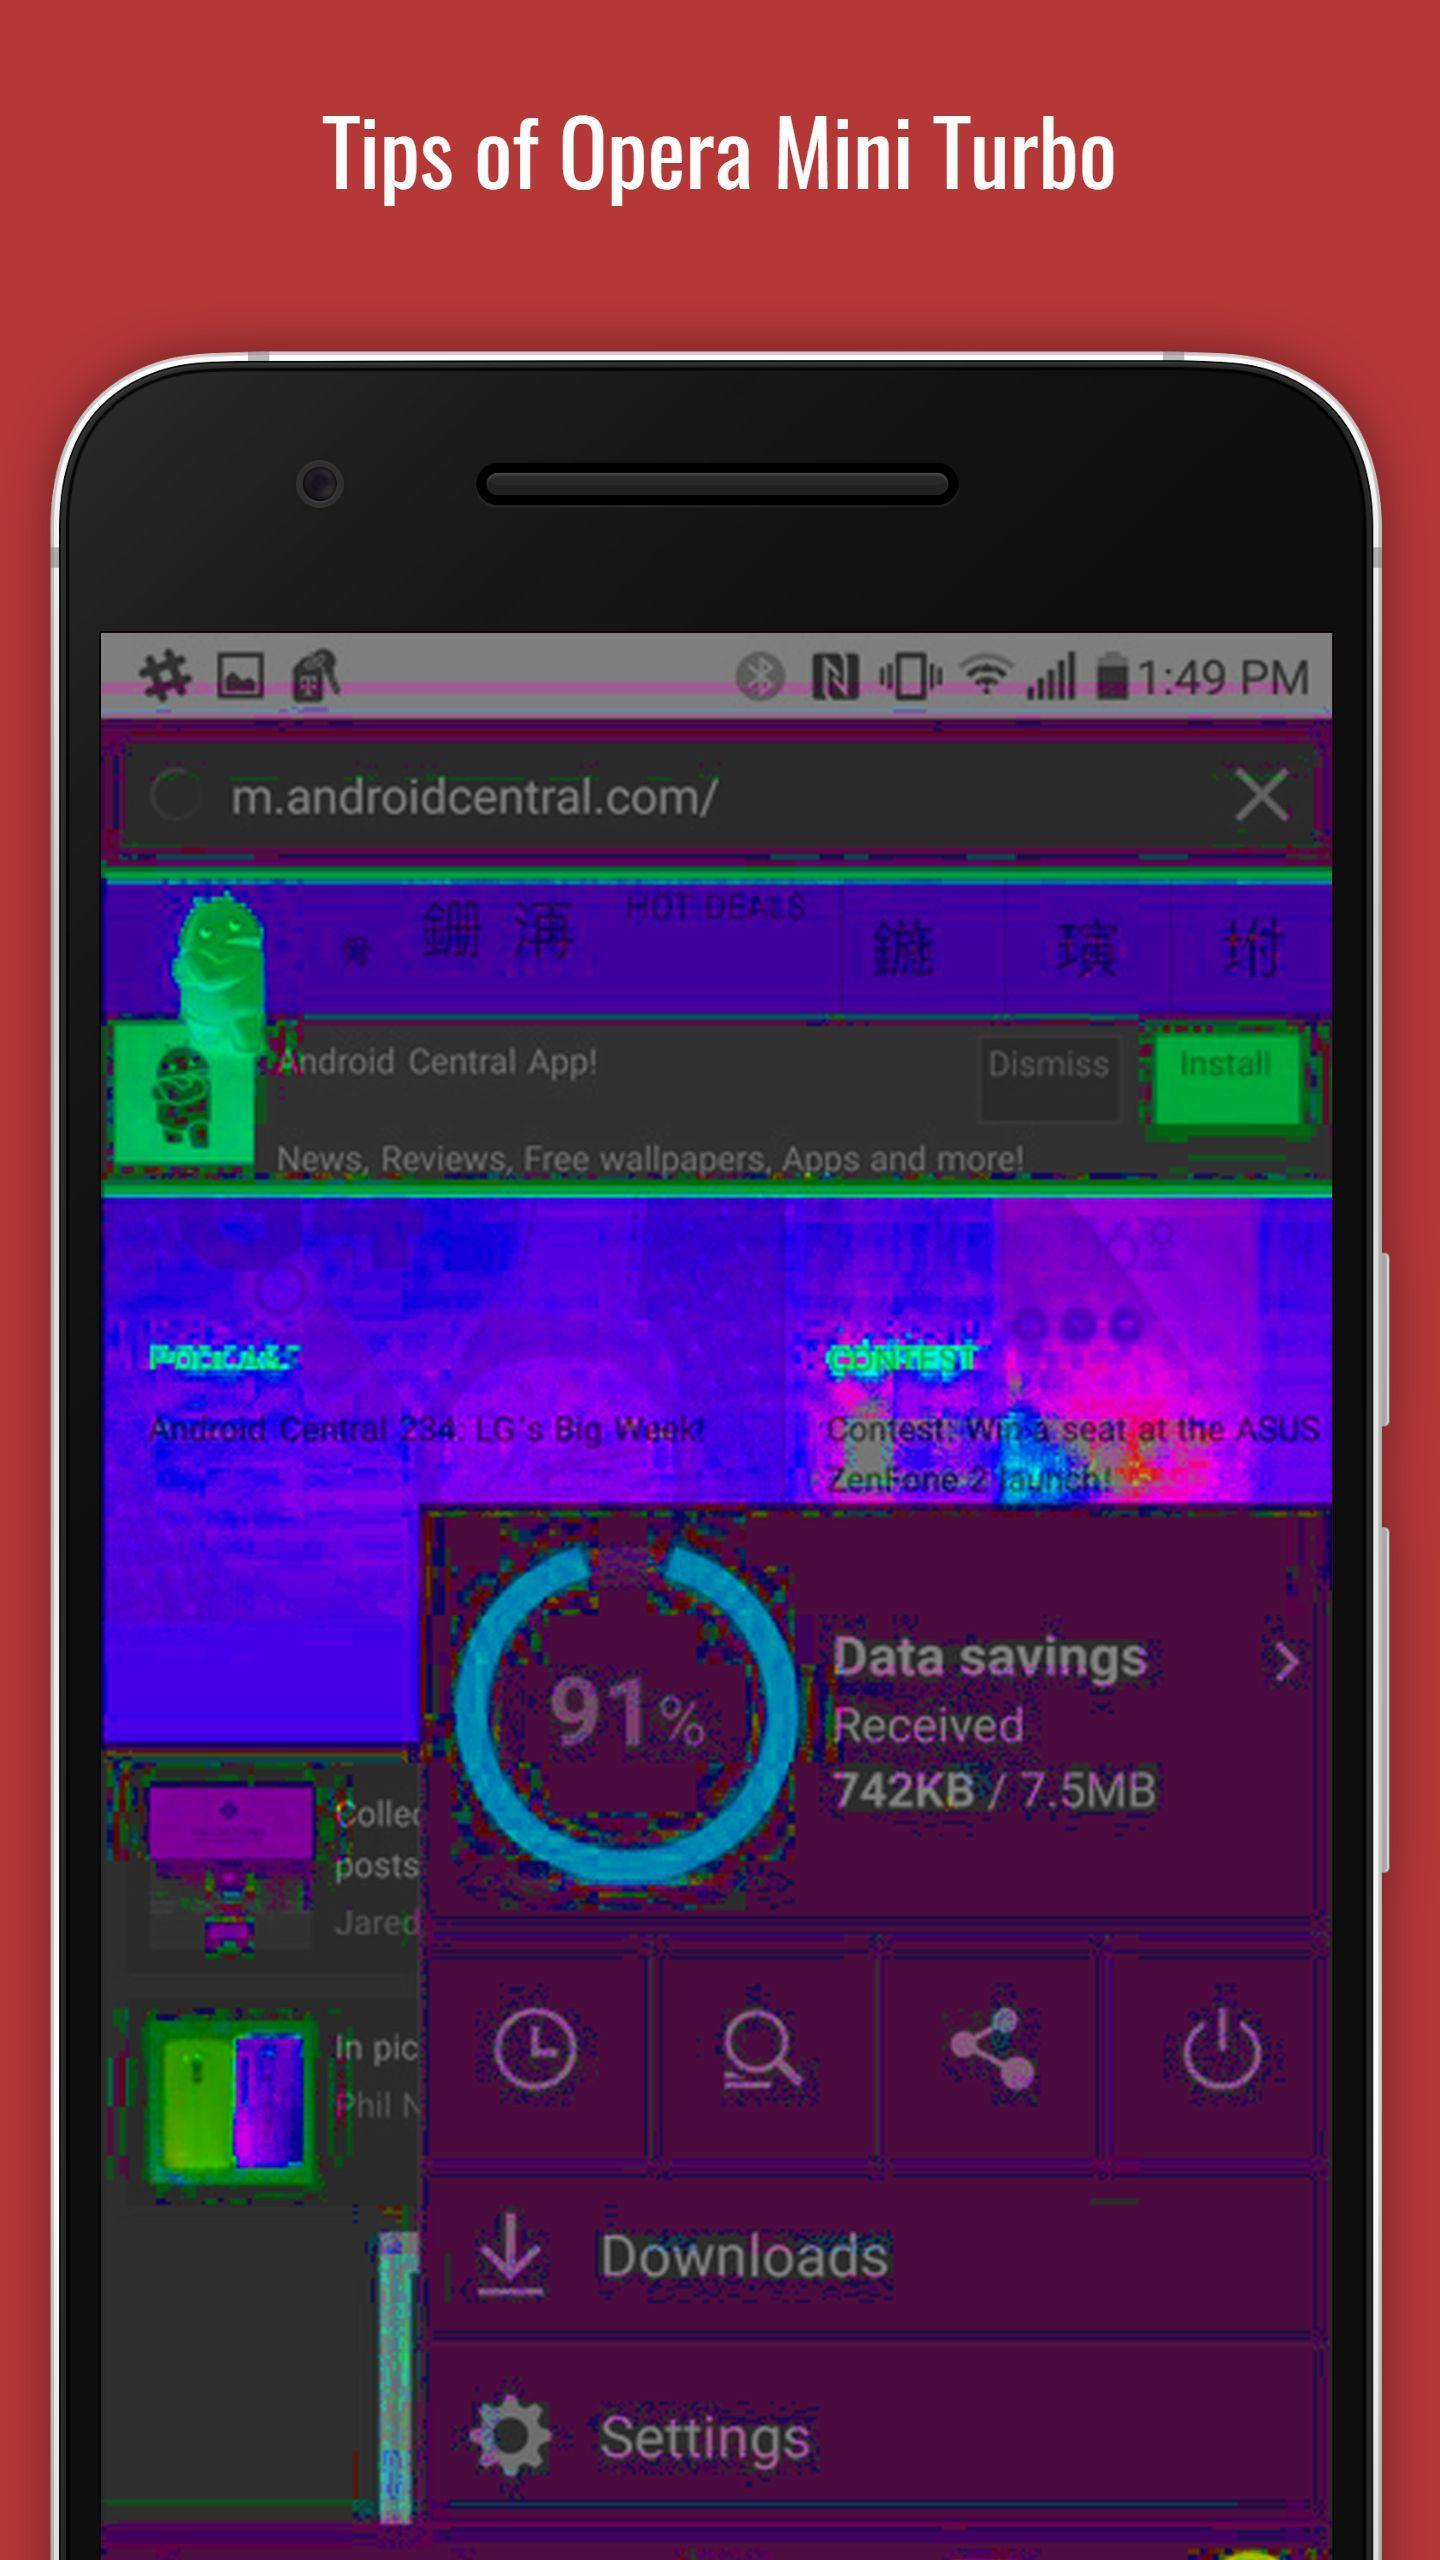 Tips of Opera Mini Turbo for Android - APK Download